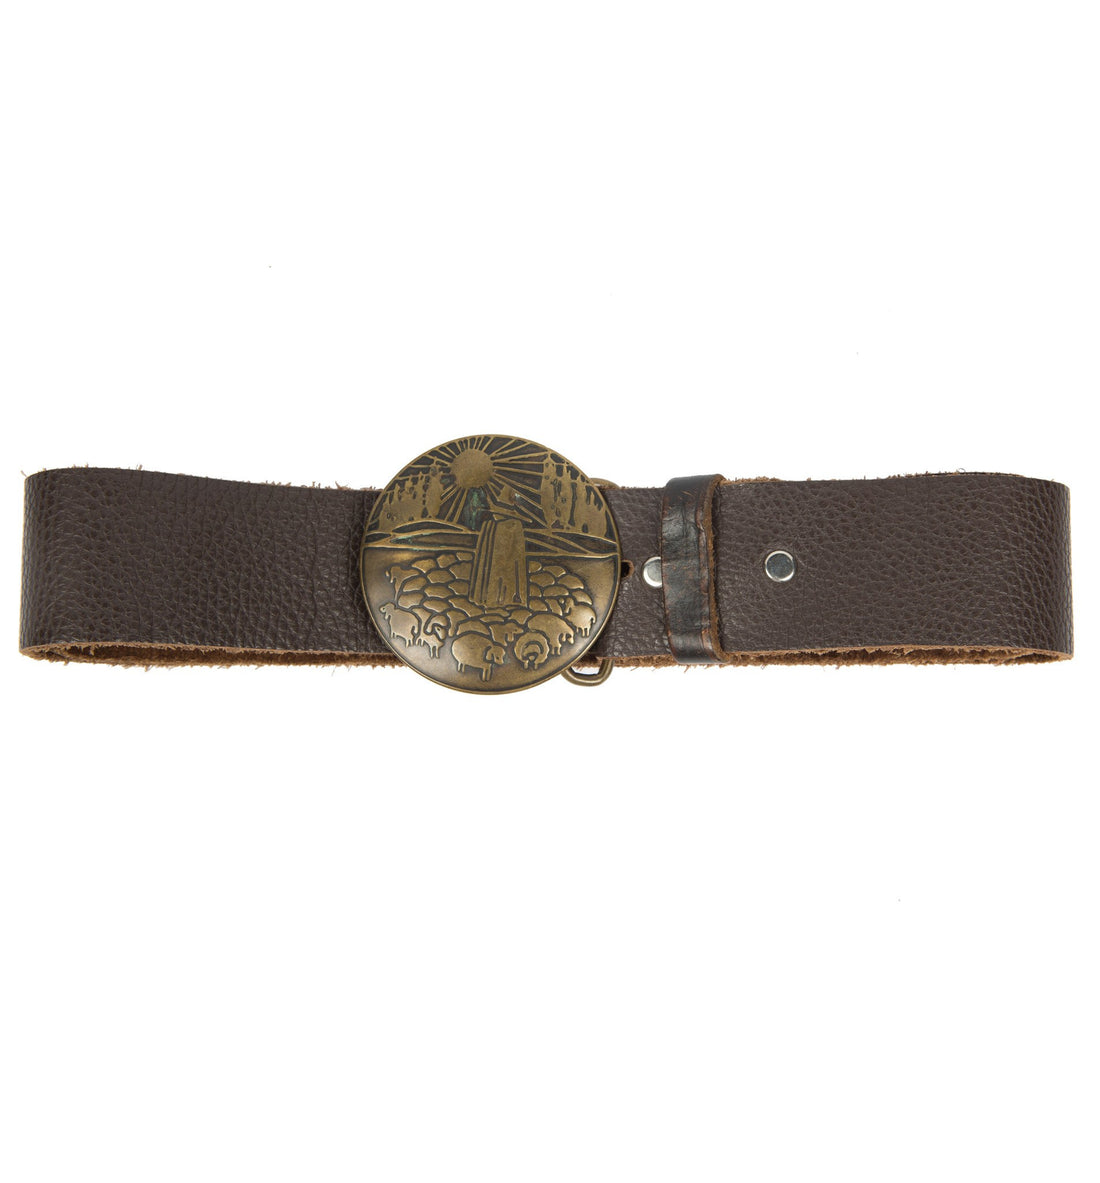 Vintage Brown Leather Shepard Buckle Belt, Size 34 - Vintage - Iron and Resin